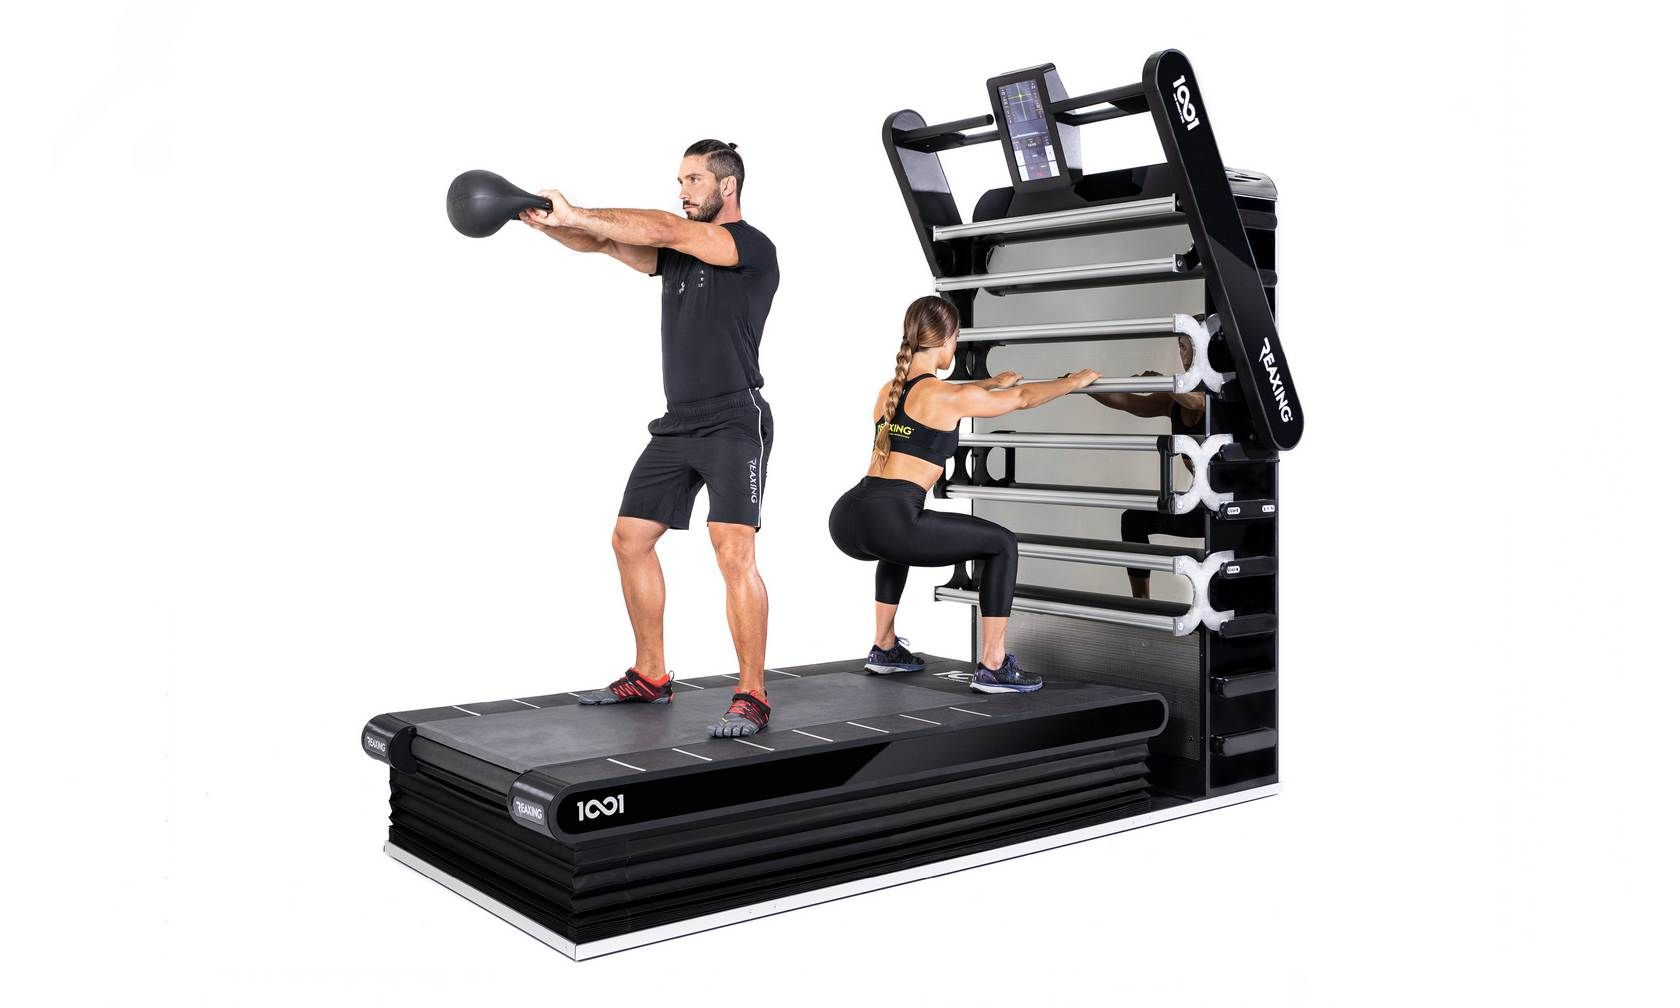 One Infinity One Self Sanitizing Multi Functional Station In Only 4sqm In 2021 Strength And Conditioning Coach Strength Conditioning Sports